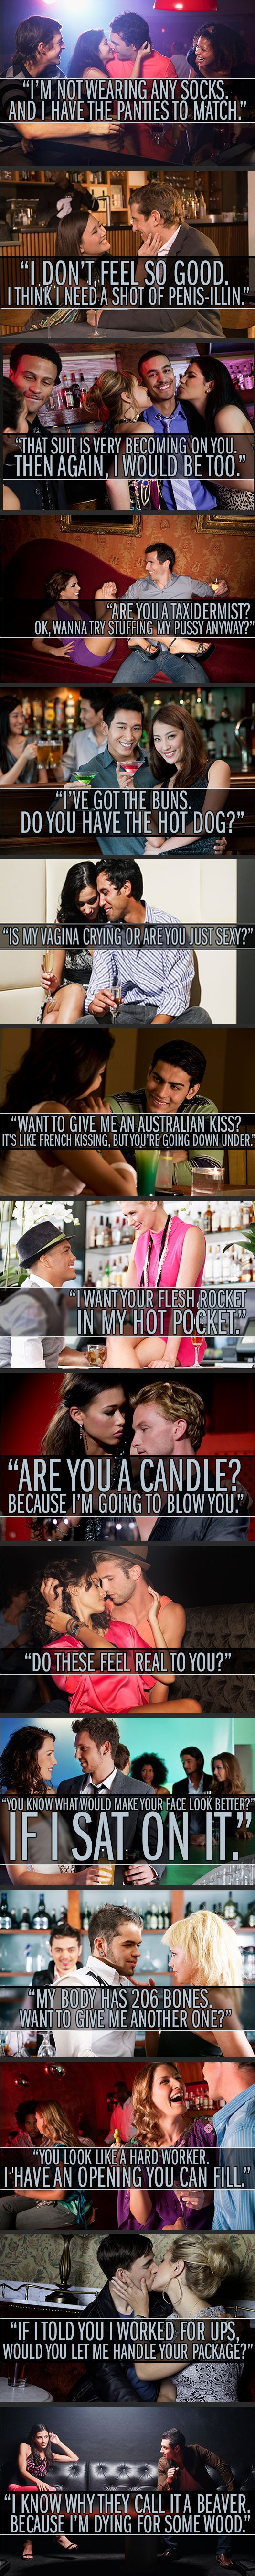 If women used pick up lines